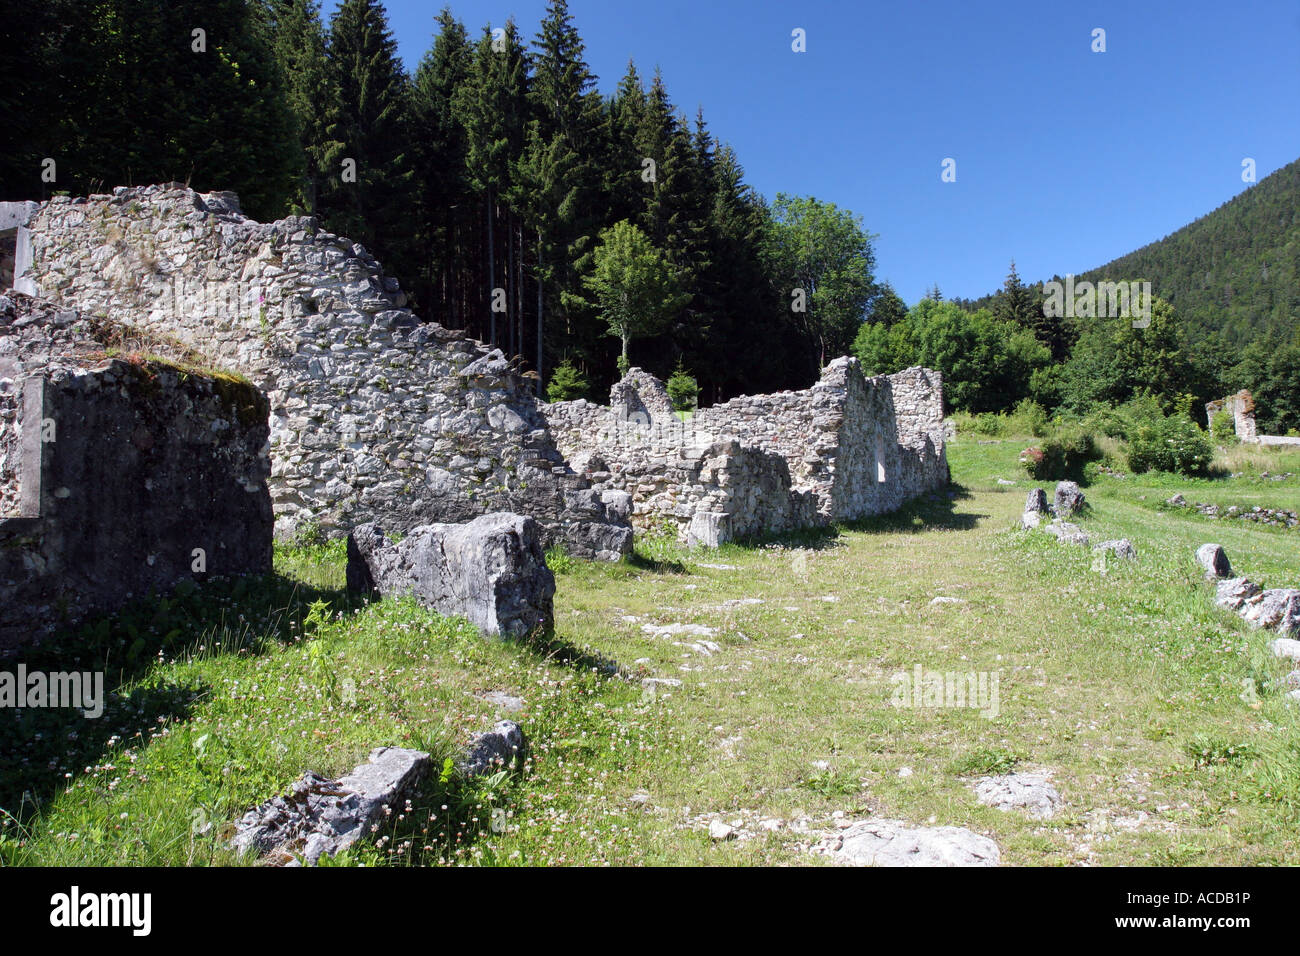 Stone Work and Ruined Buildings at Valchevriere a Village Destroyed in WW2 by the Germans in the Vercors Natural - Stock Image